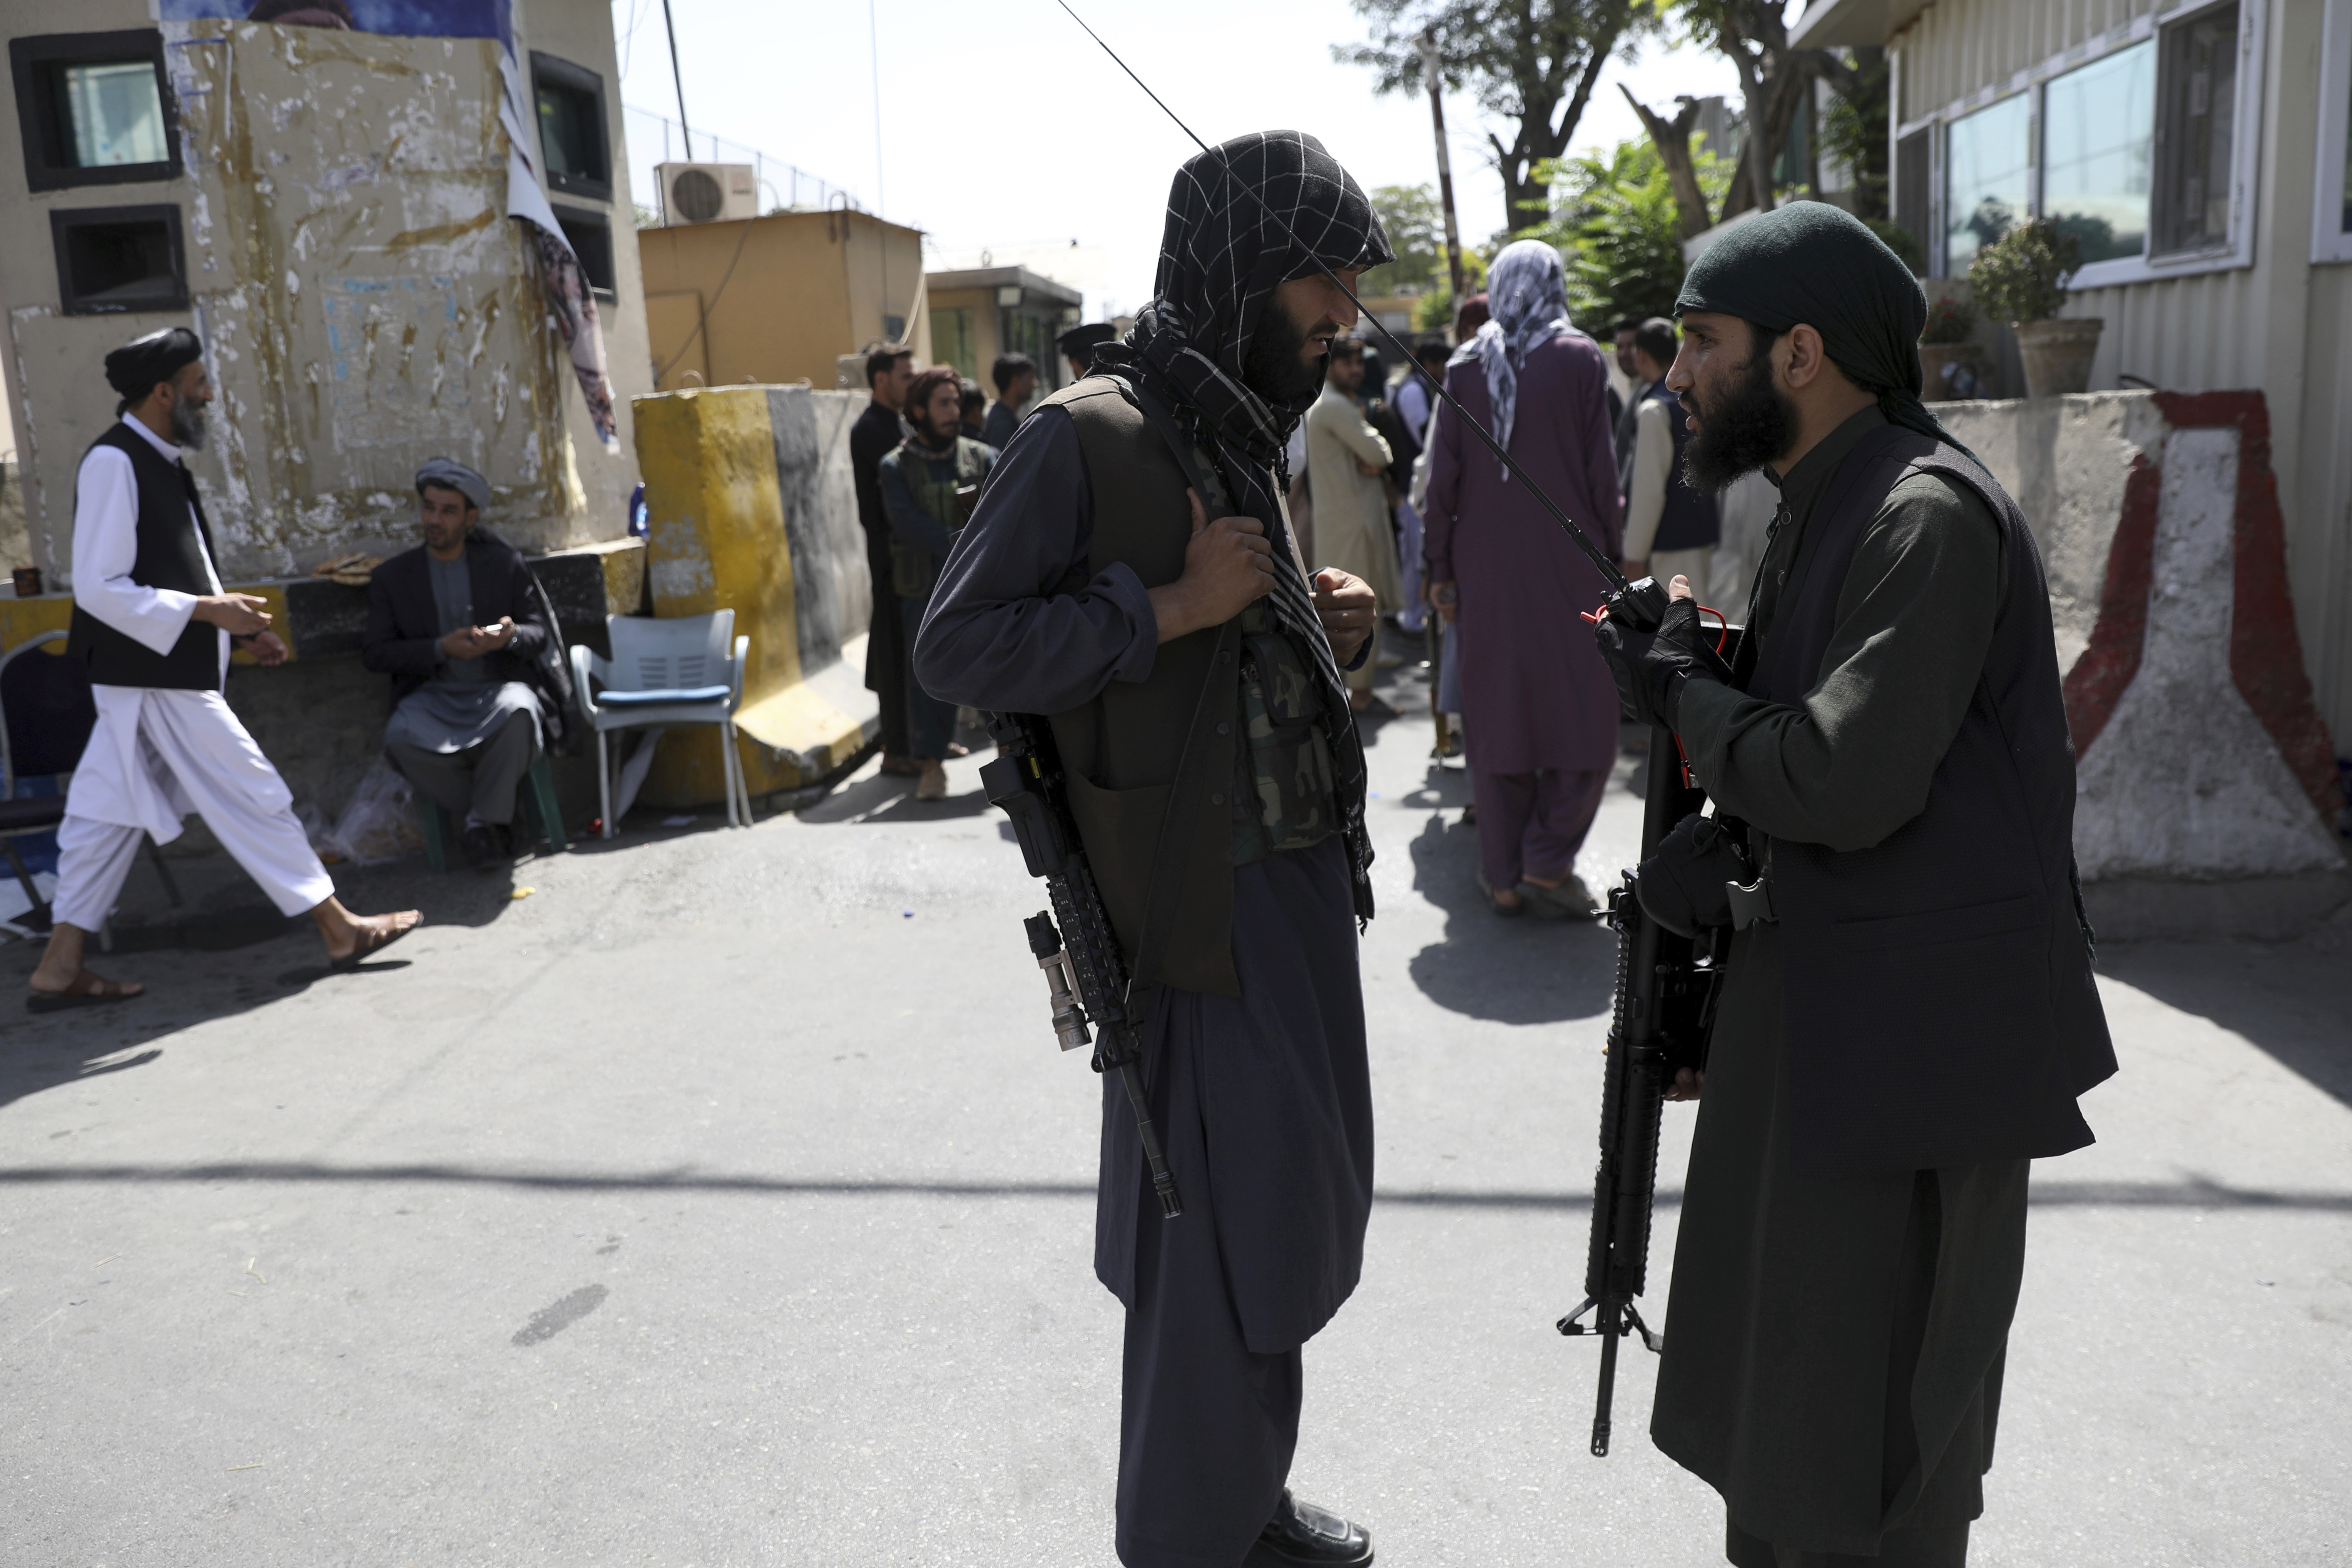 Taliban fighters stand guard in front of the main gate leading to Afghan presidential palace in Kabul.